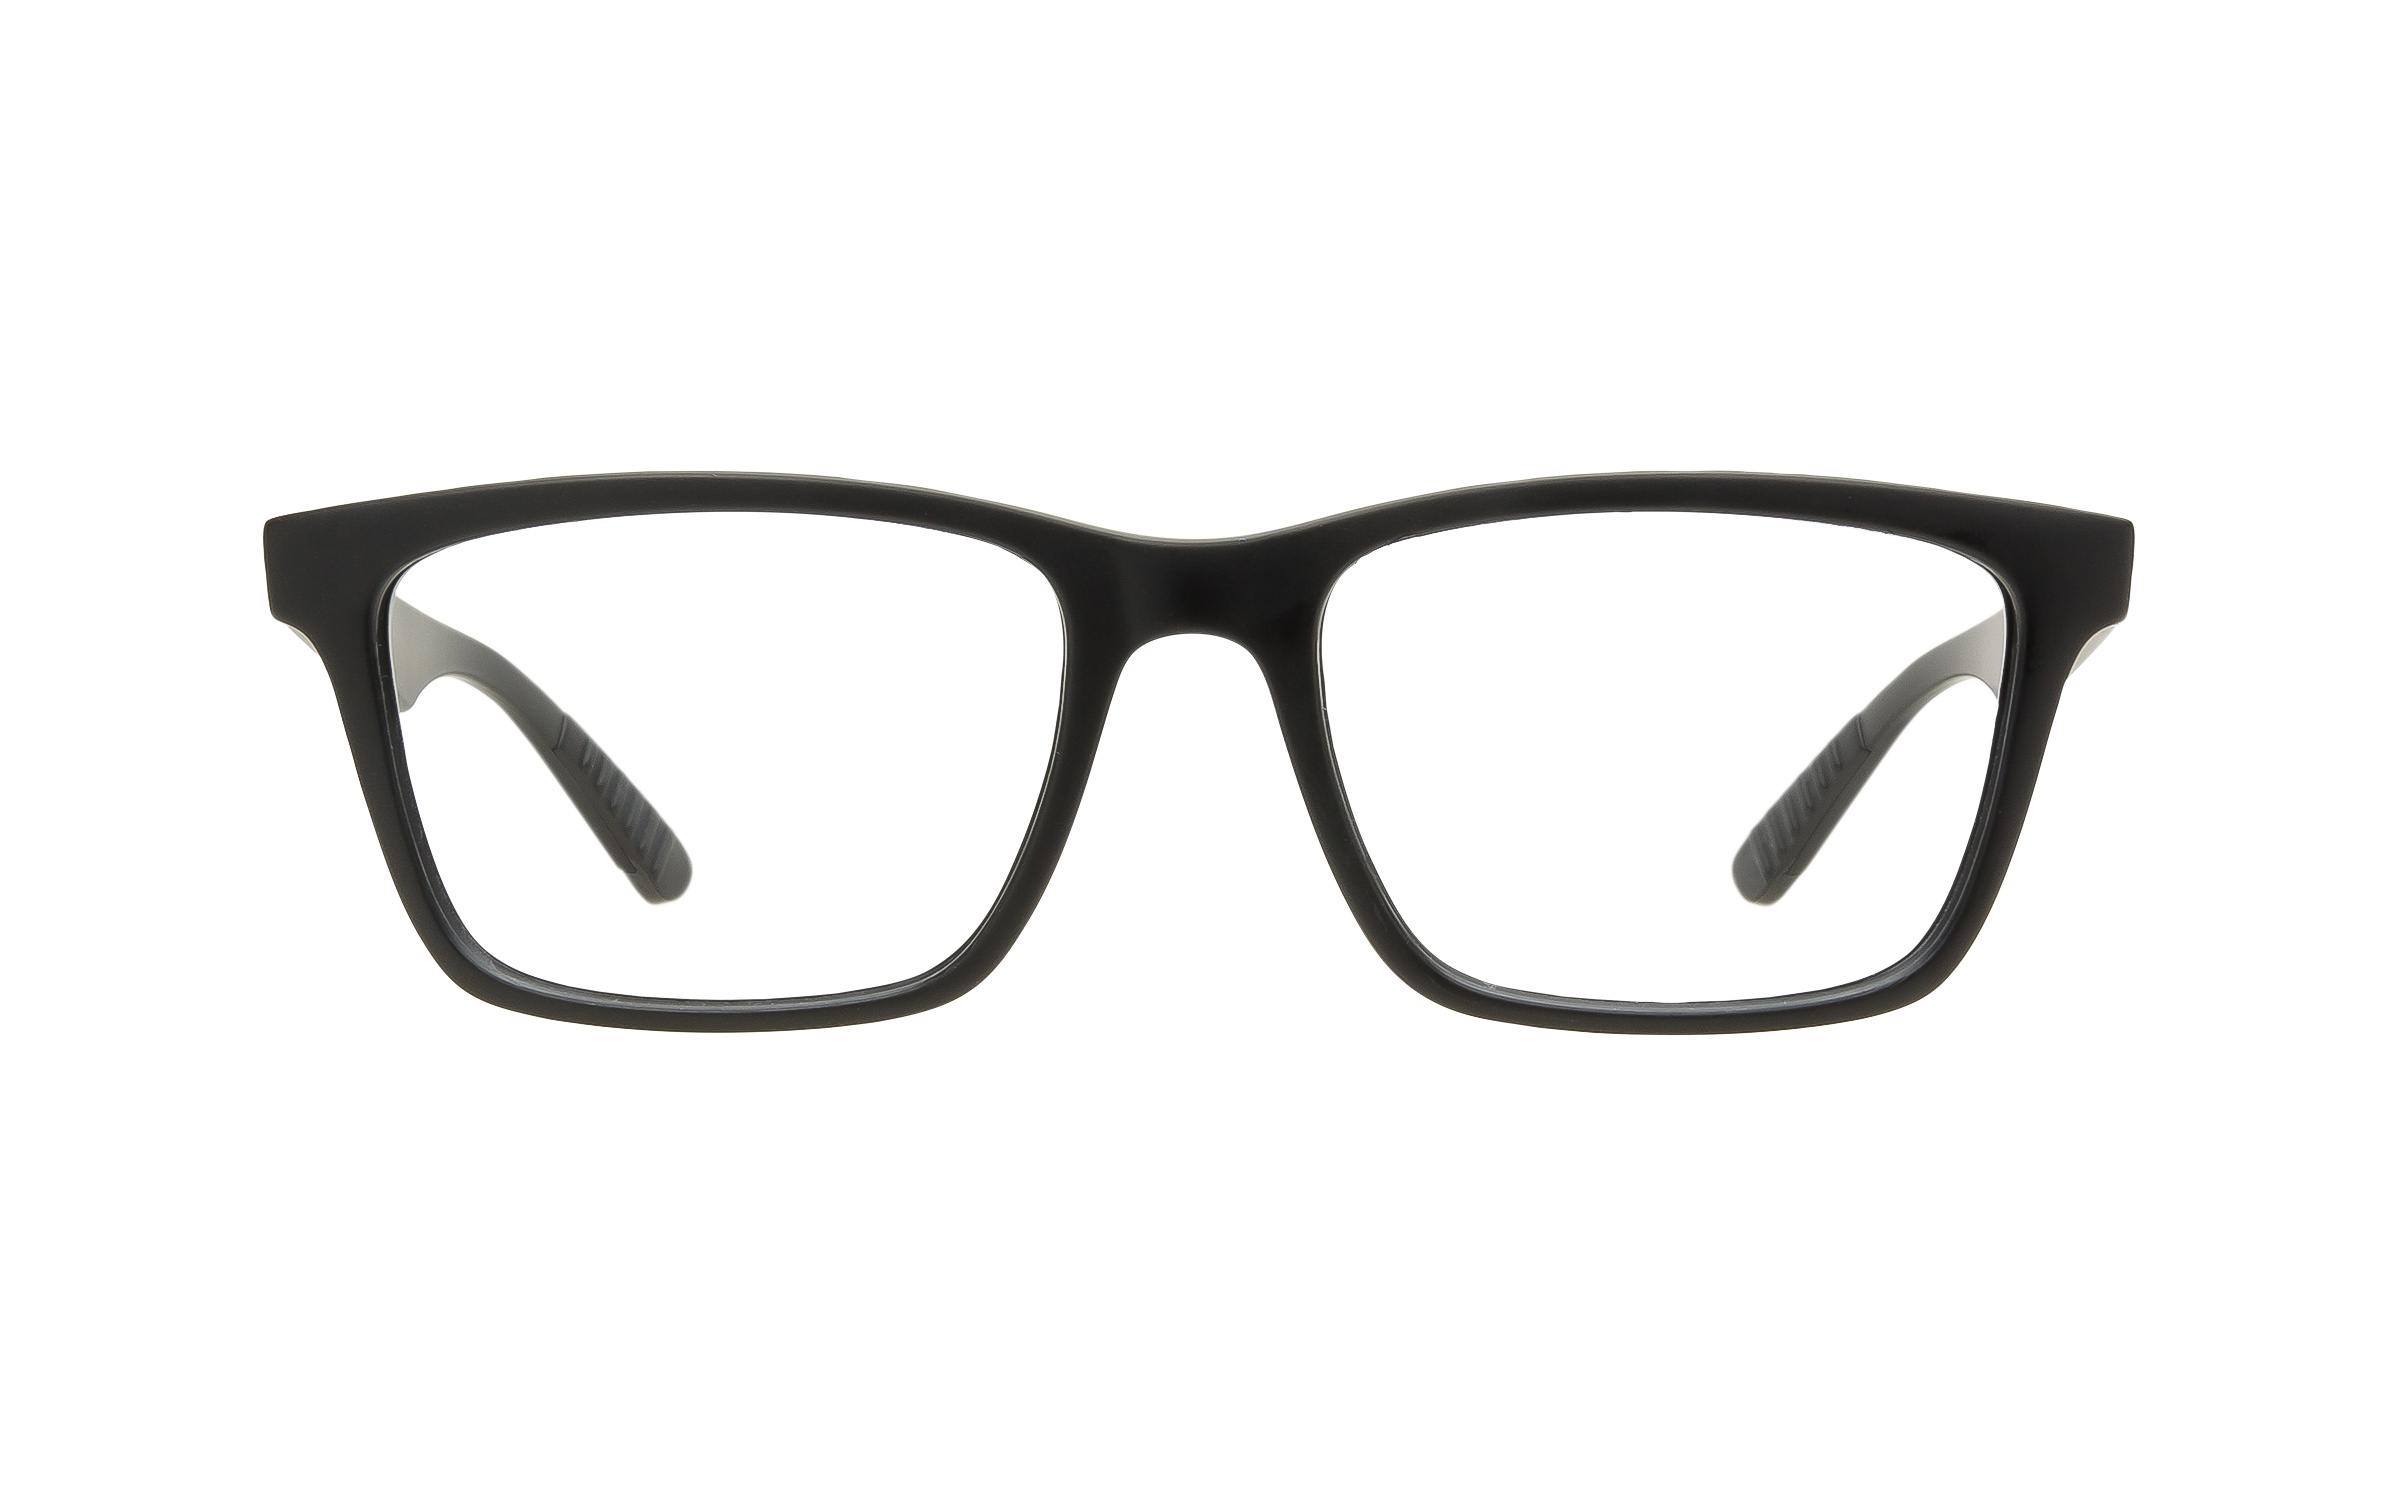 Luxottica Ray-Ban RX7025 2077 Eyeglasses and Frame in Matte Black - Online Coastal